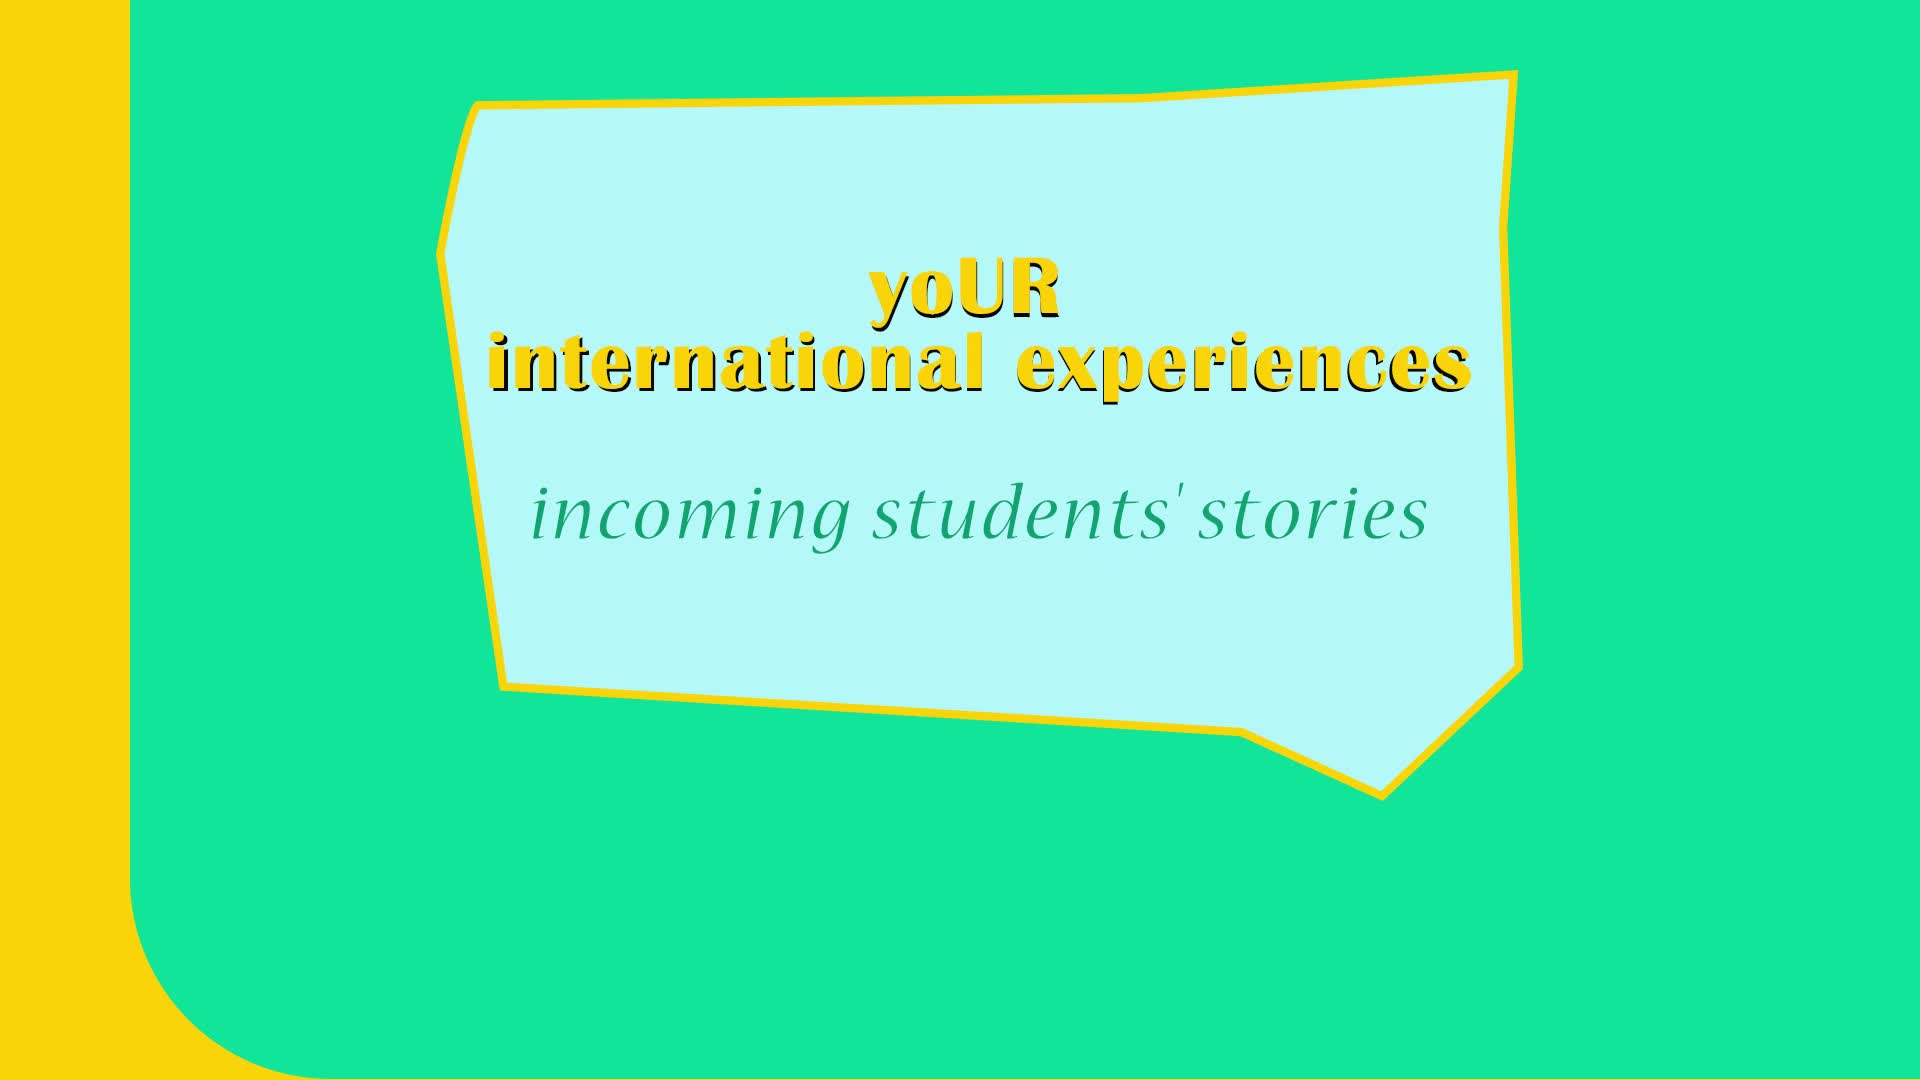 Interview with incoming students - Giacomo from Italy